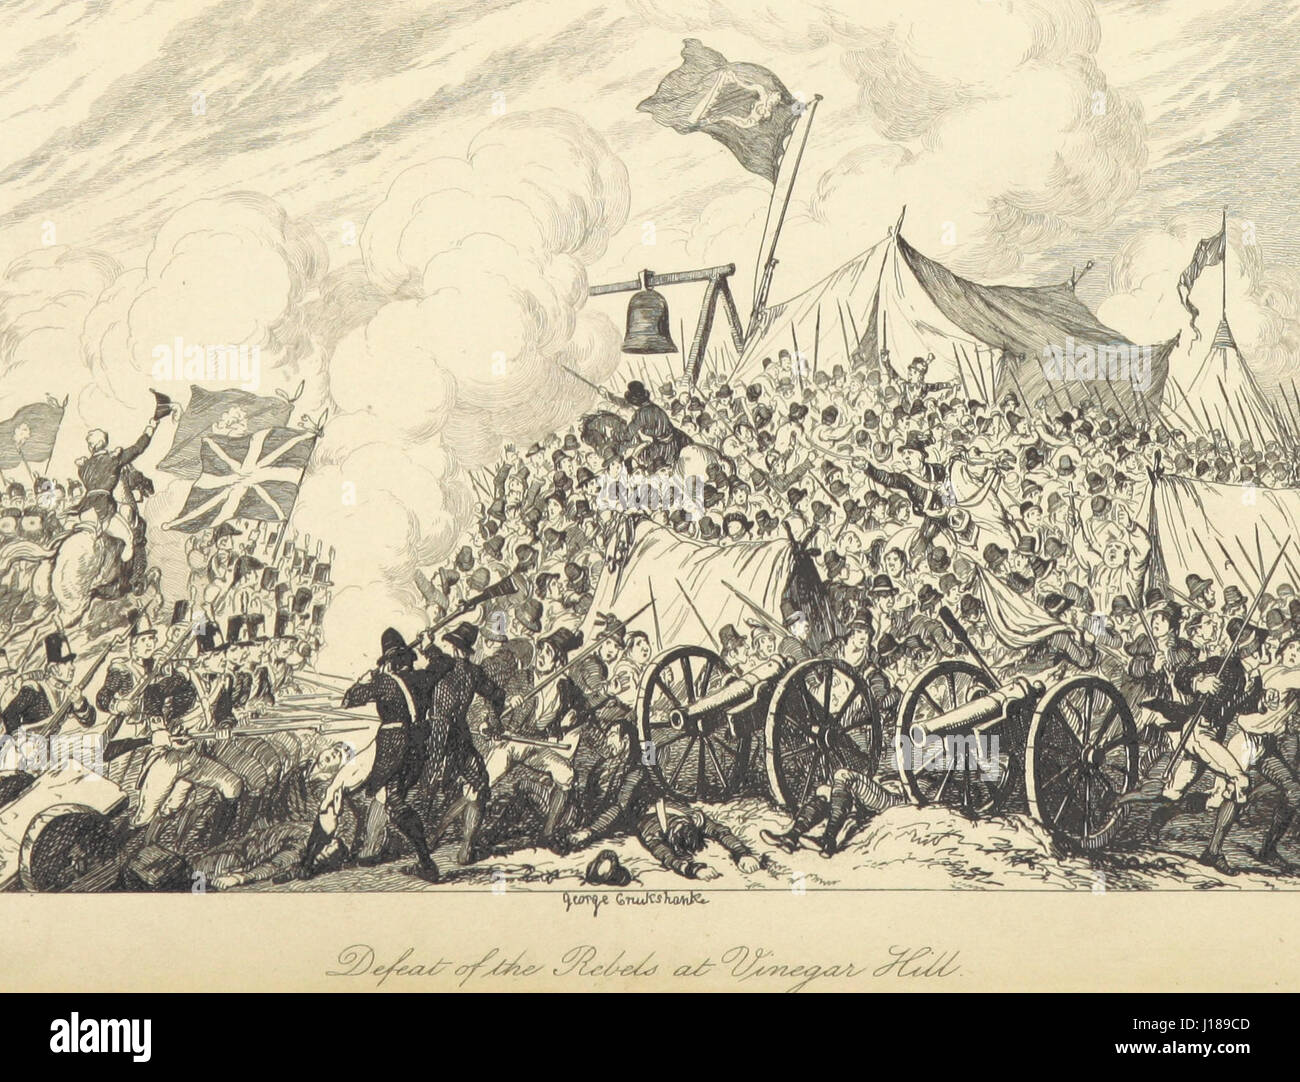 Defeat of the Rebels at Vinegar Hill by George Cruikshank - Enniscorthy, County Wexford - June 21, 1798. Stock Photo